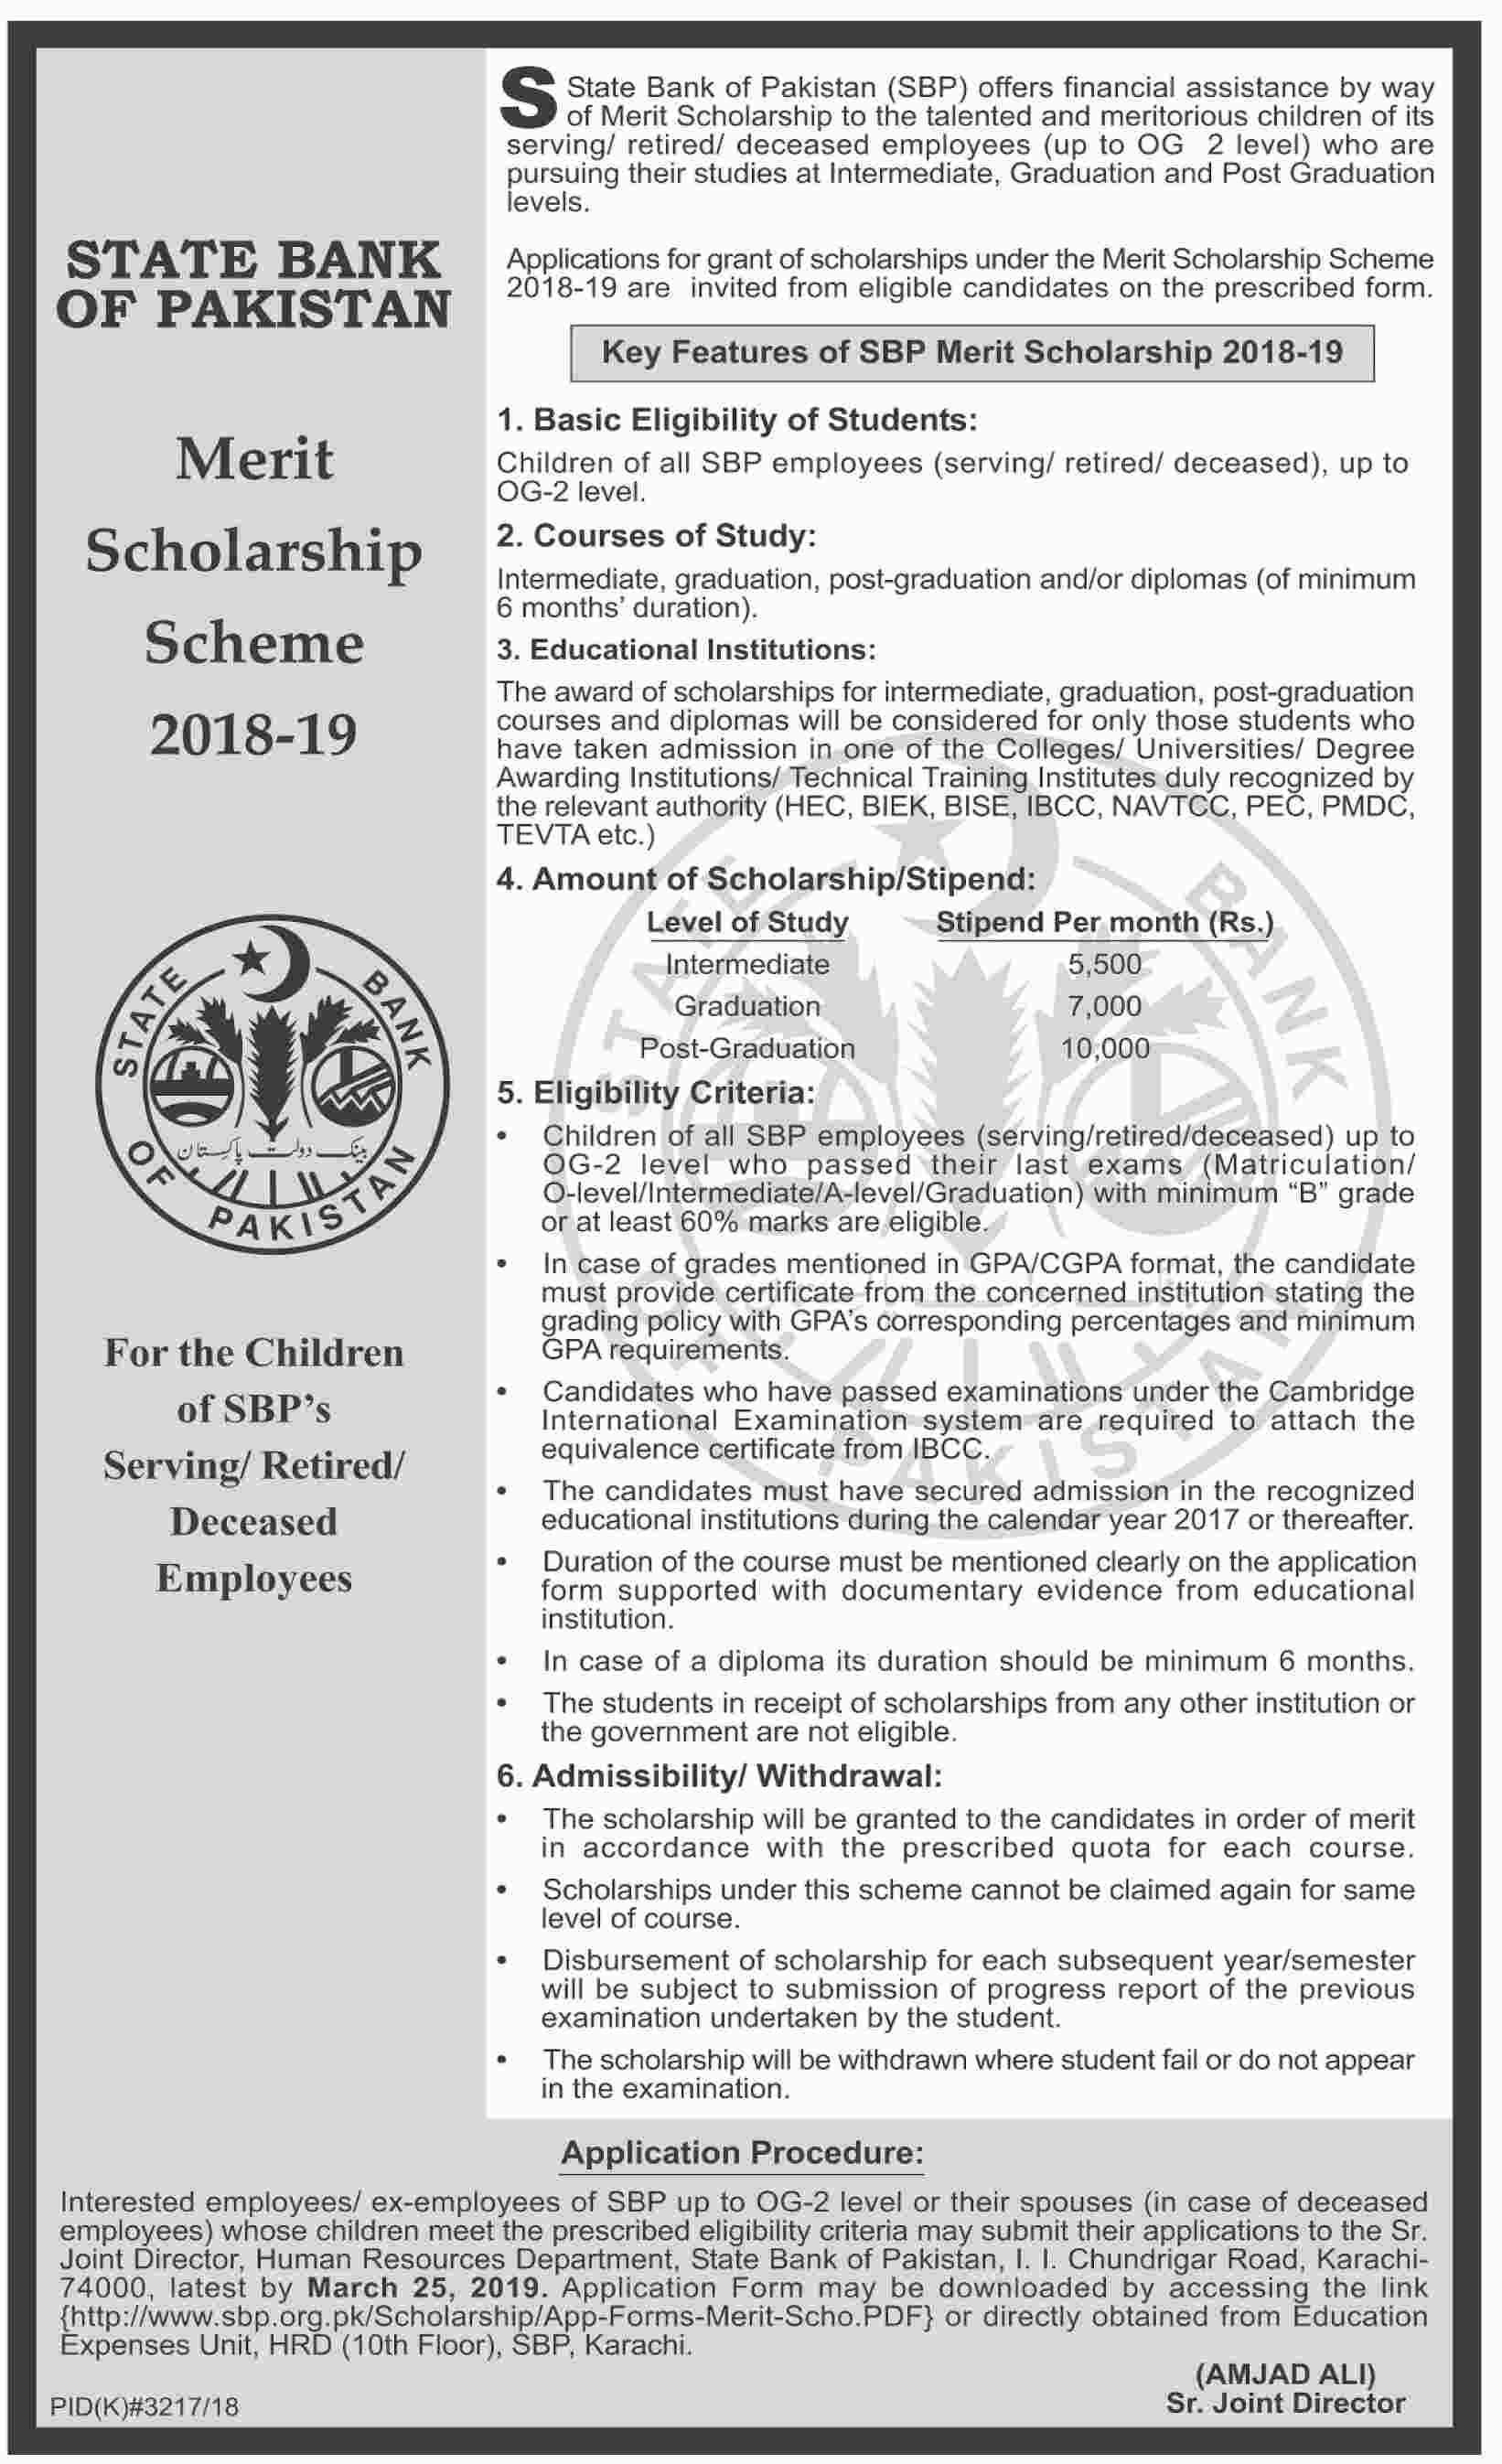 Merit Scholarship Scheme 2018-19 to the Talented Students - State Bank of Pakistan